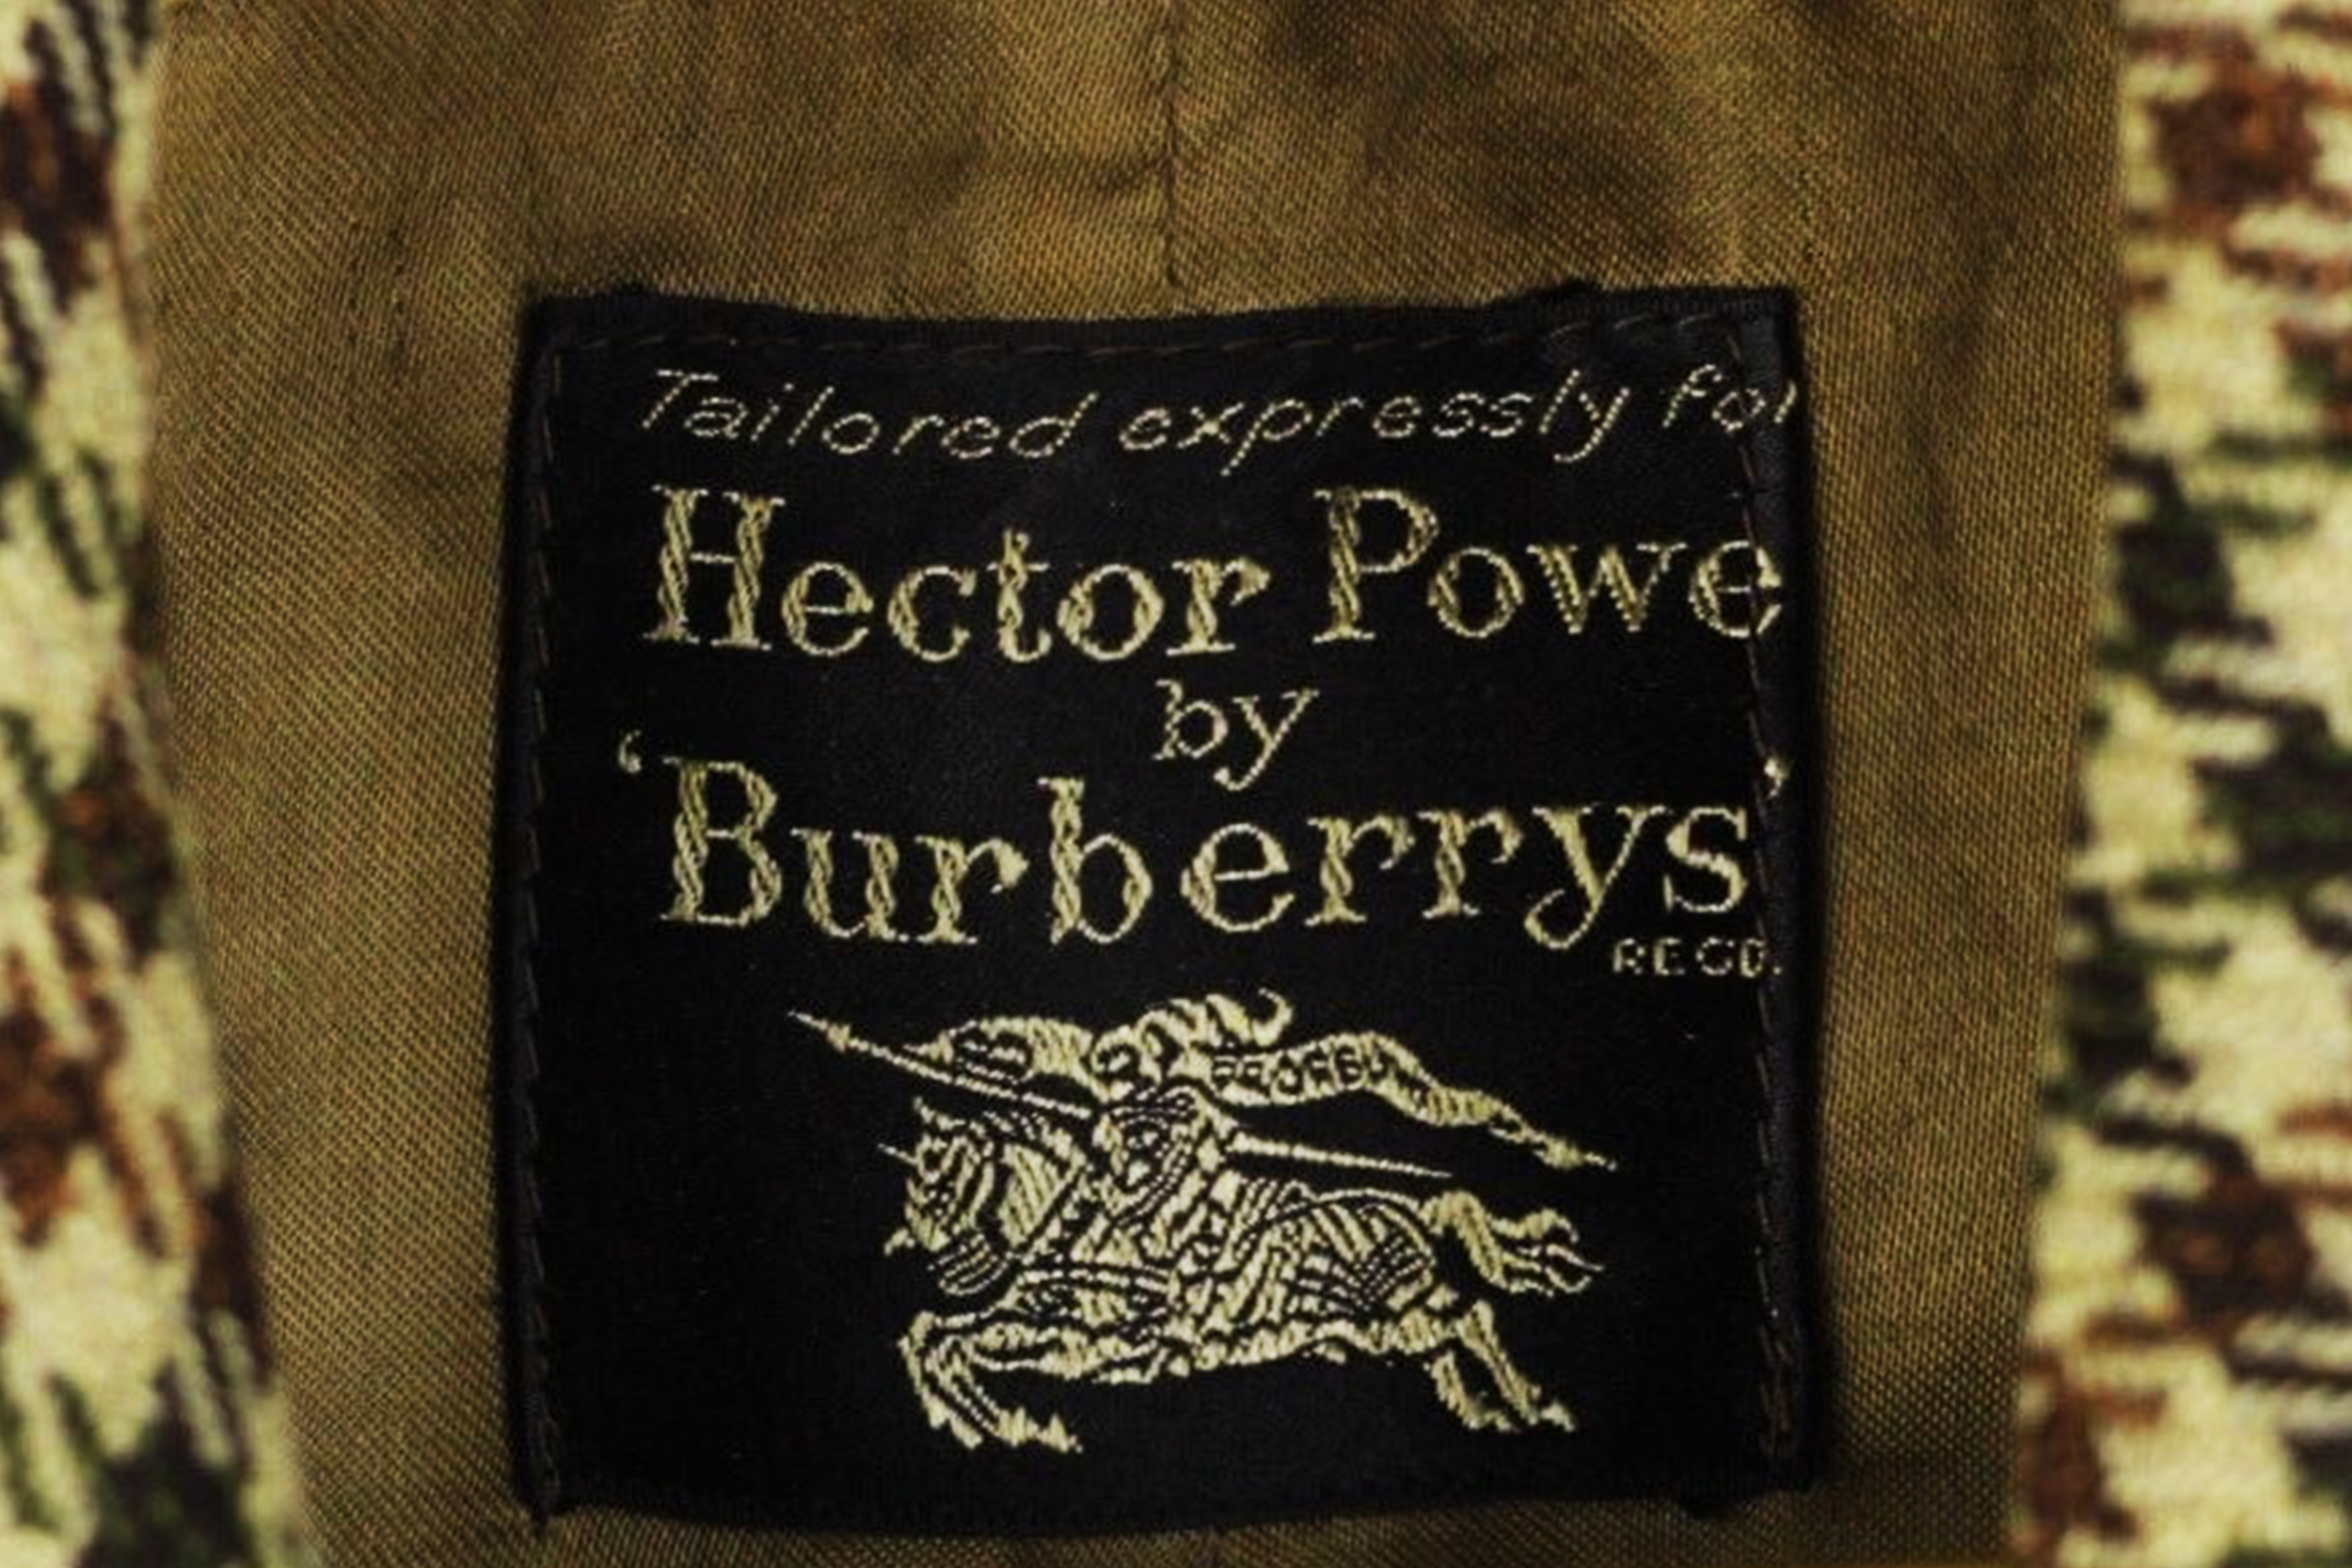 """18 — - """"Hector Powe by Burberrys"""" entered the lexicon of British street subculture, with tribes such as Mod revivalists, second-wave Skinheads, Suedeheads, and even Football Casuals choosing these collaborative pieces as part of their carefully curated uniforms.Hector Powe by Burberrys – Street style uniform"""